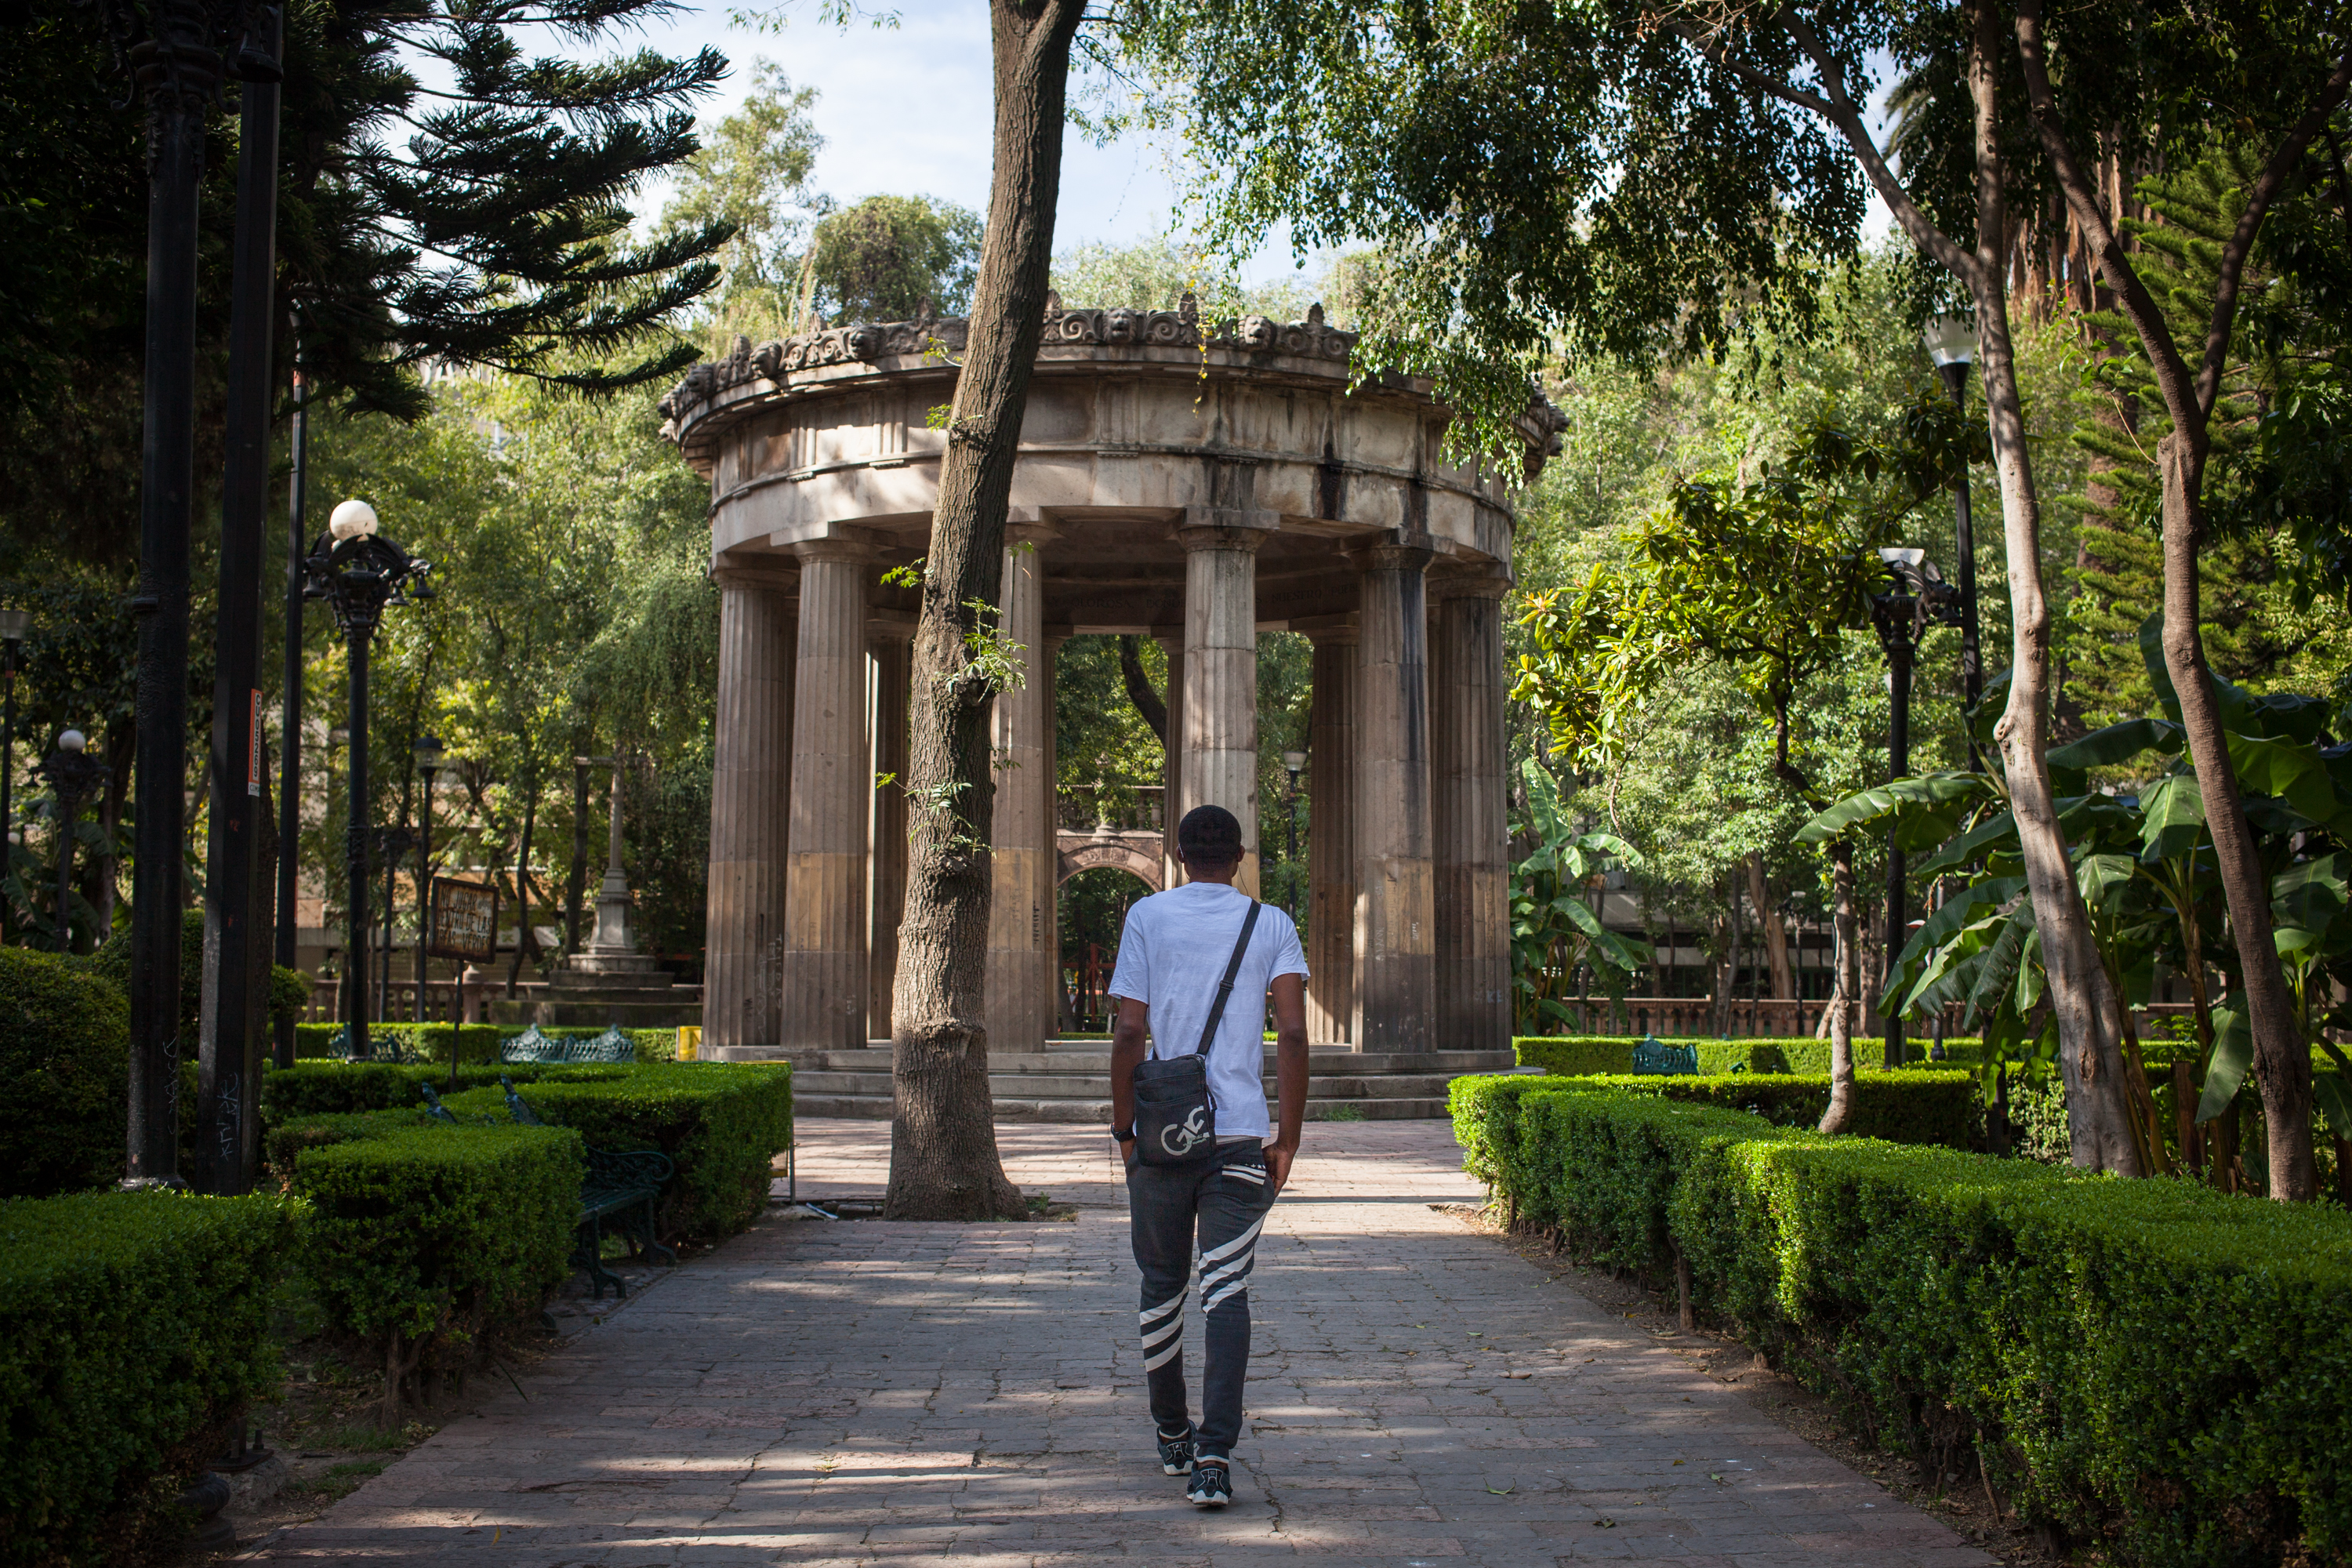 Victor walks through a park in Mexico City